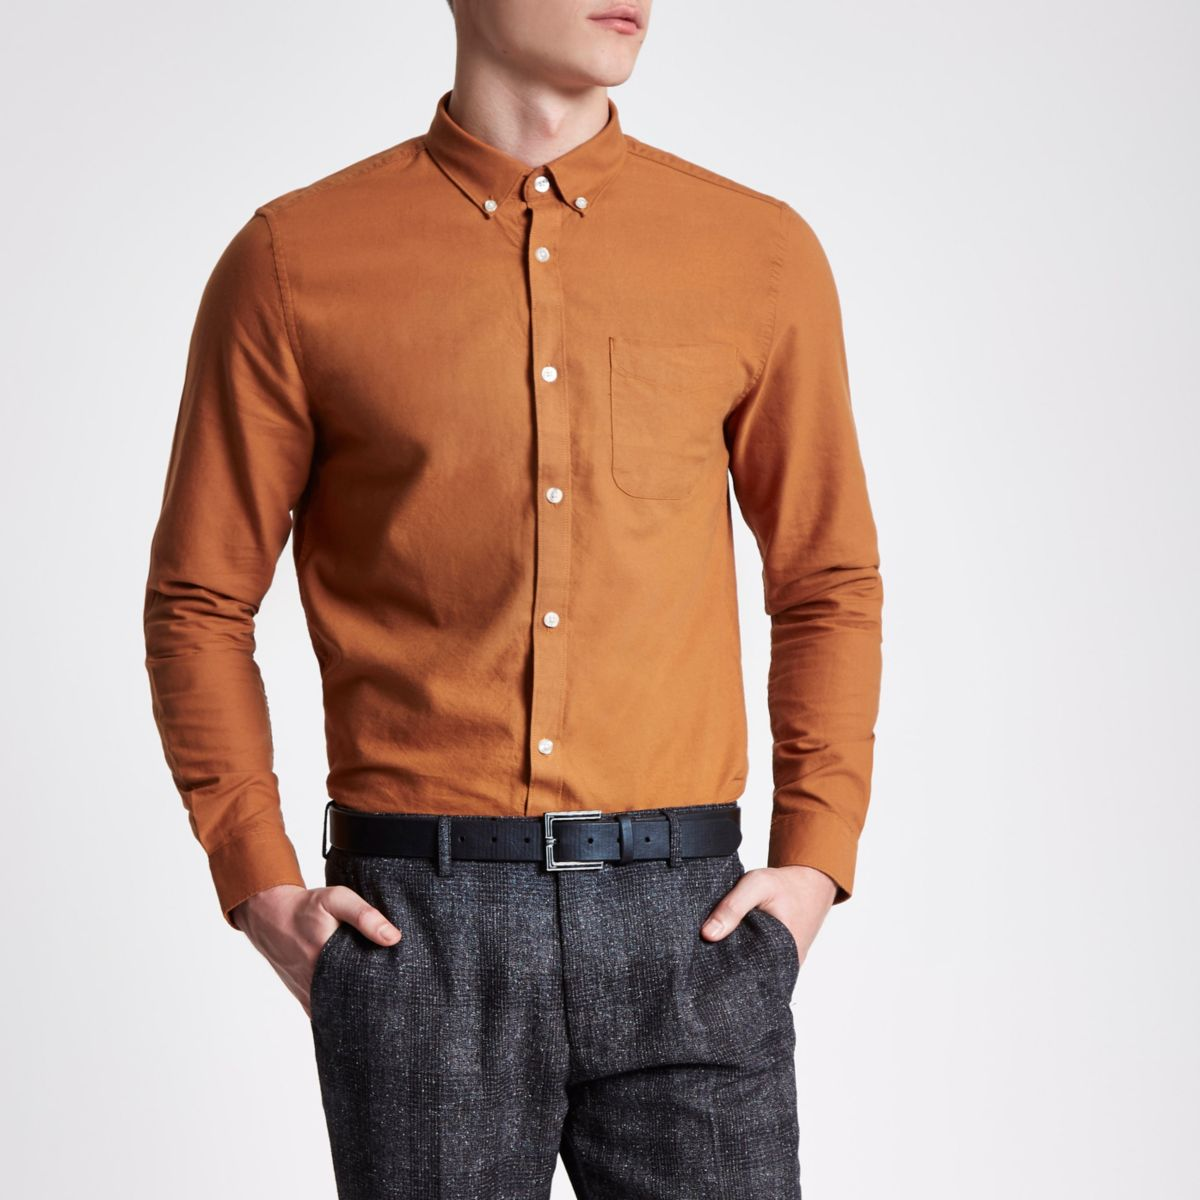 Rust orange long sleeve Oxford shirt